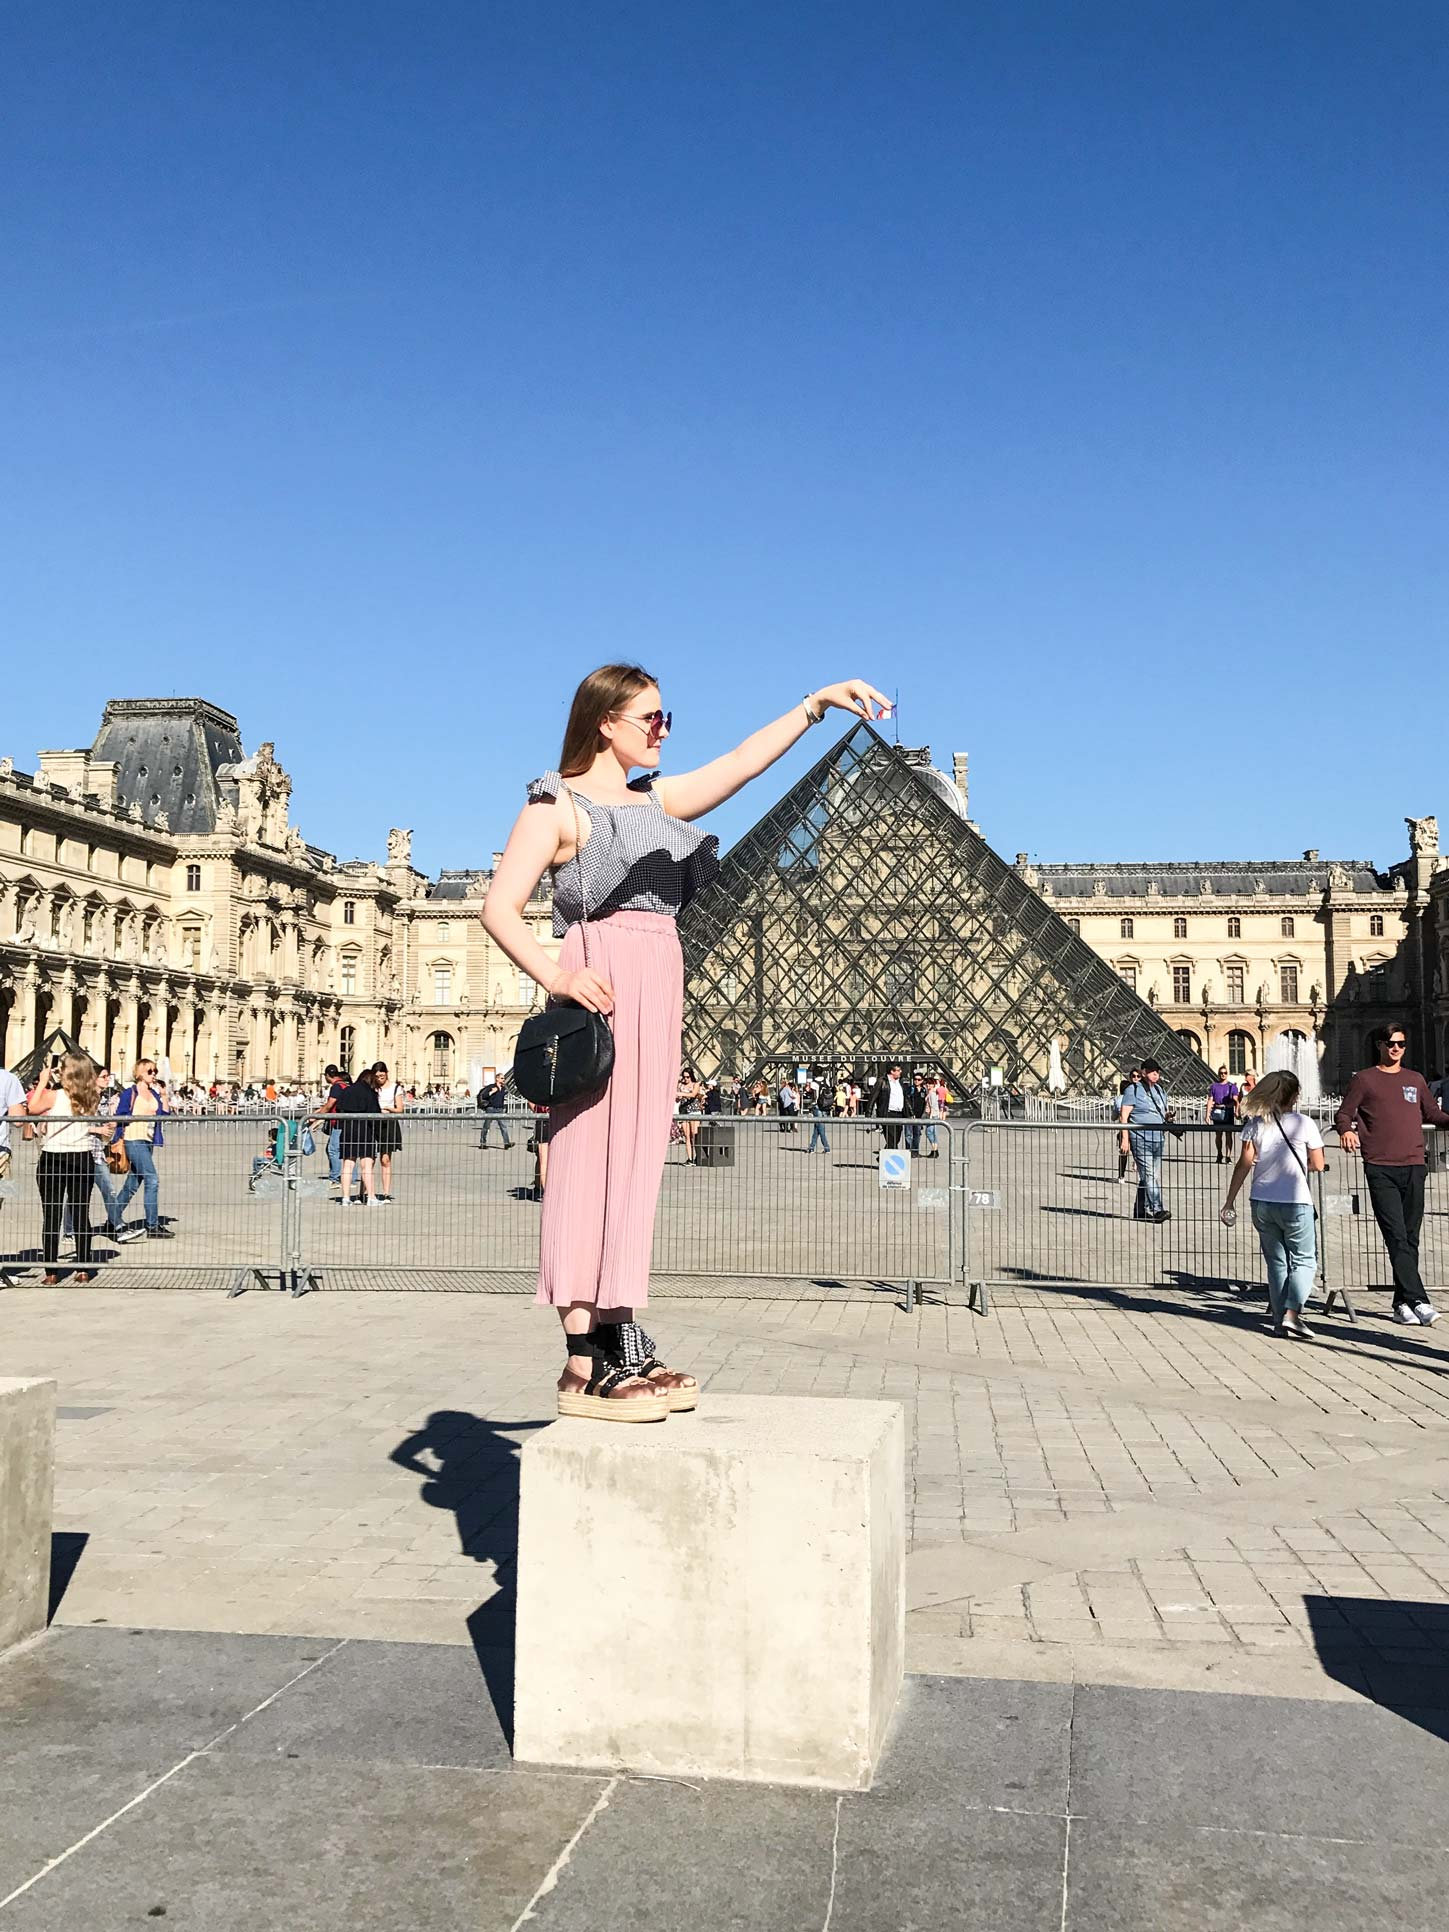 Mussee-de-Louvre-Paris-Travel-Guide-Flora-Fallue